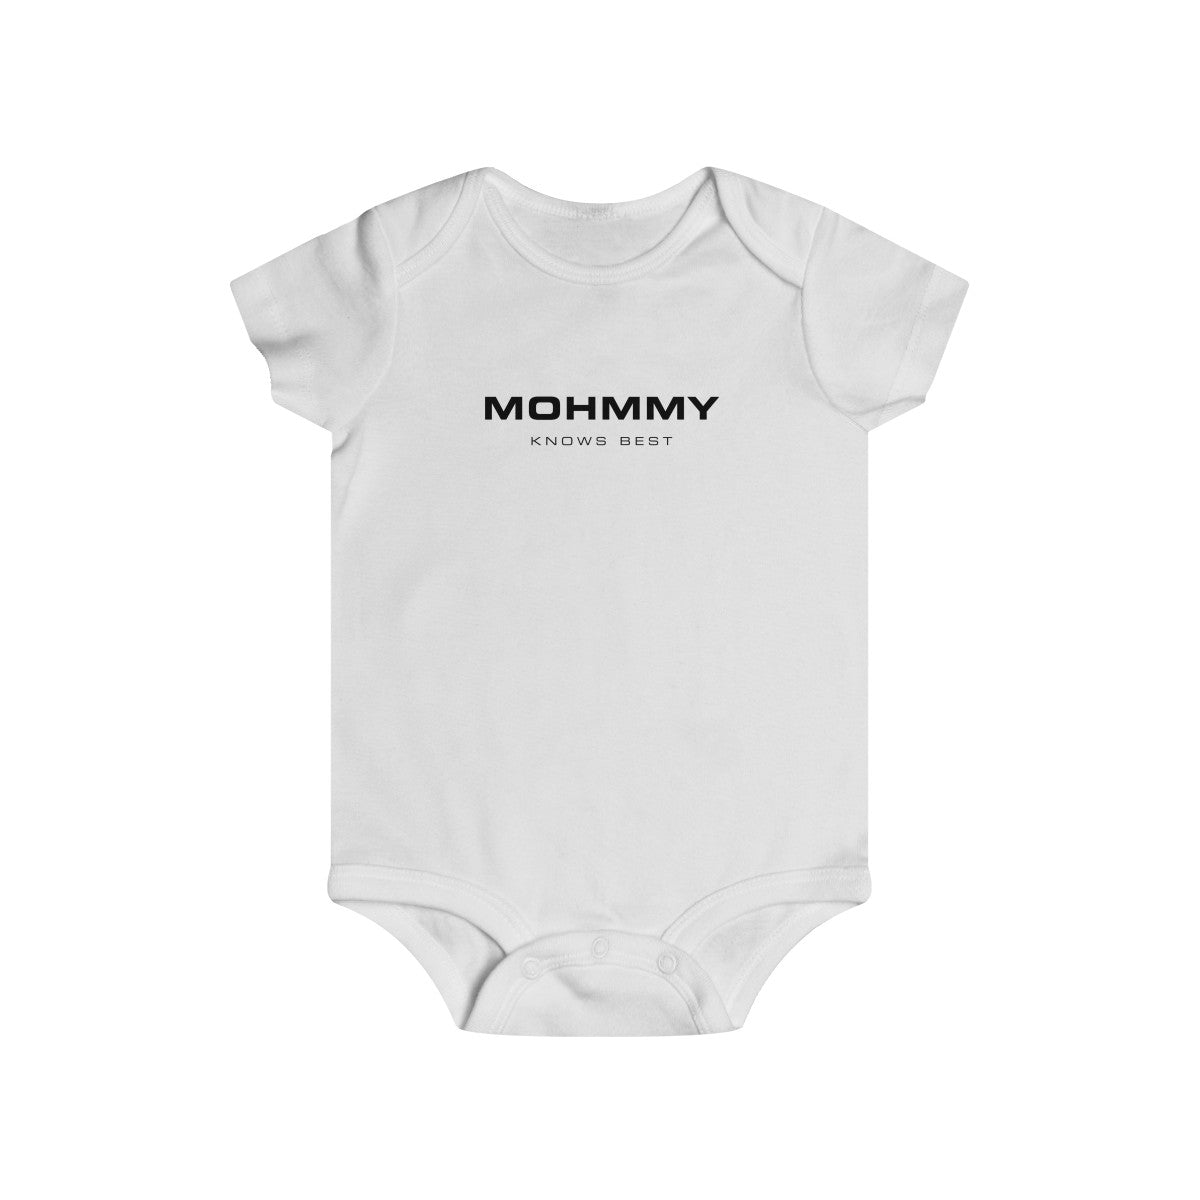 MOHMMY . Mohmmy Know Best . Black Print . Infant Rip Snap Tee